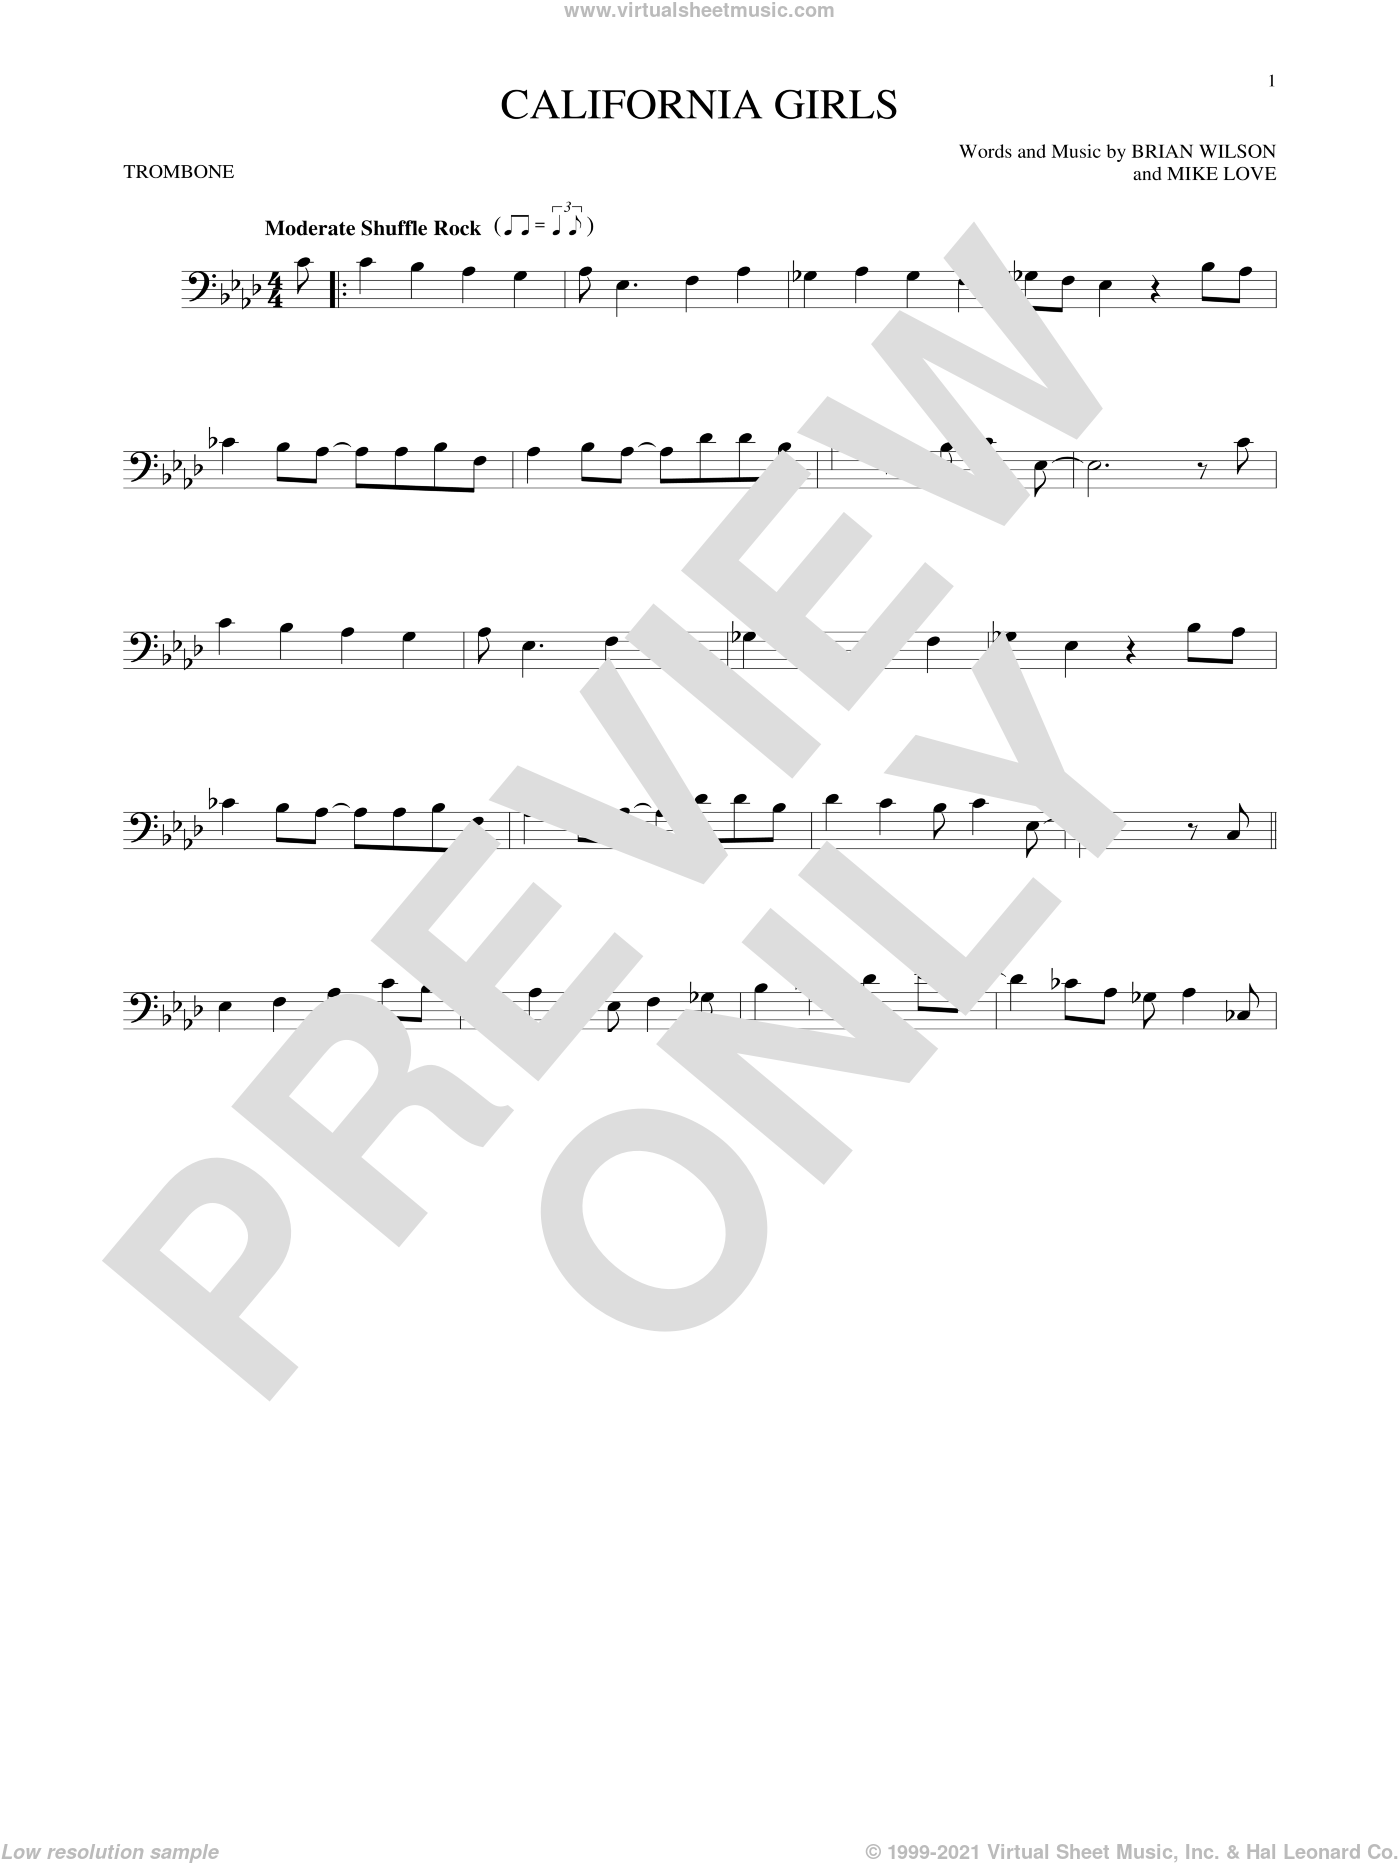 California Girls sheet music for trombone solo by The Beach Boys, David Lee Roth, Brian Wilson and Mike Love, intermediate skill level